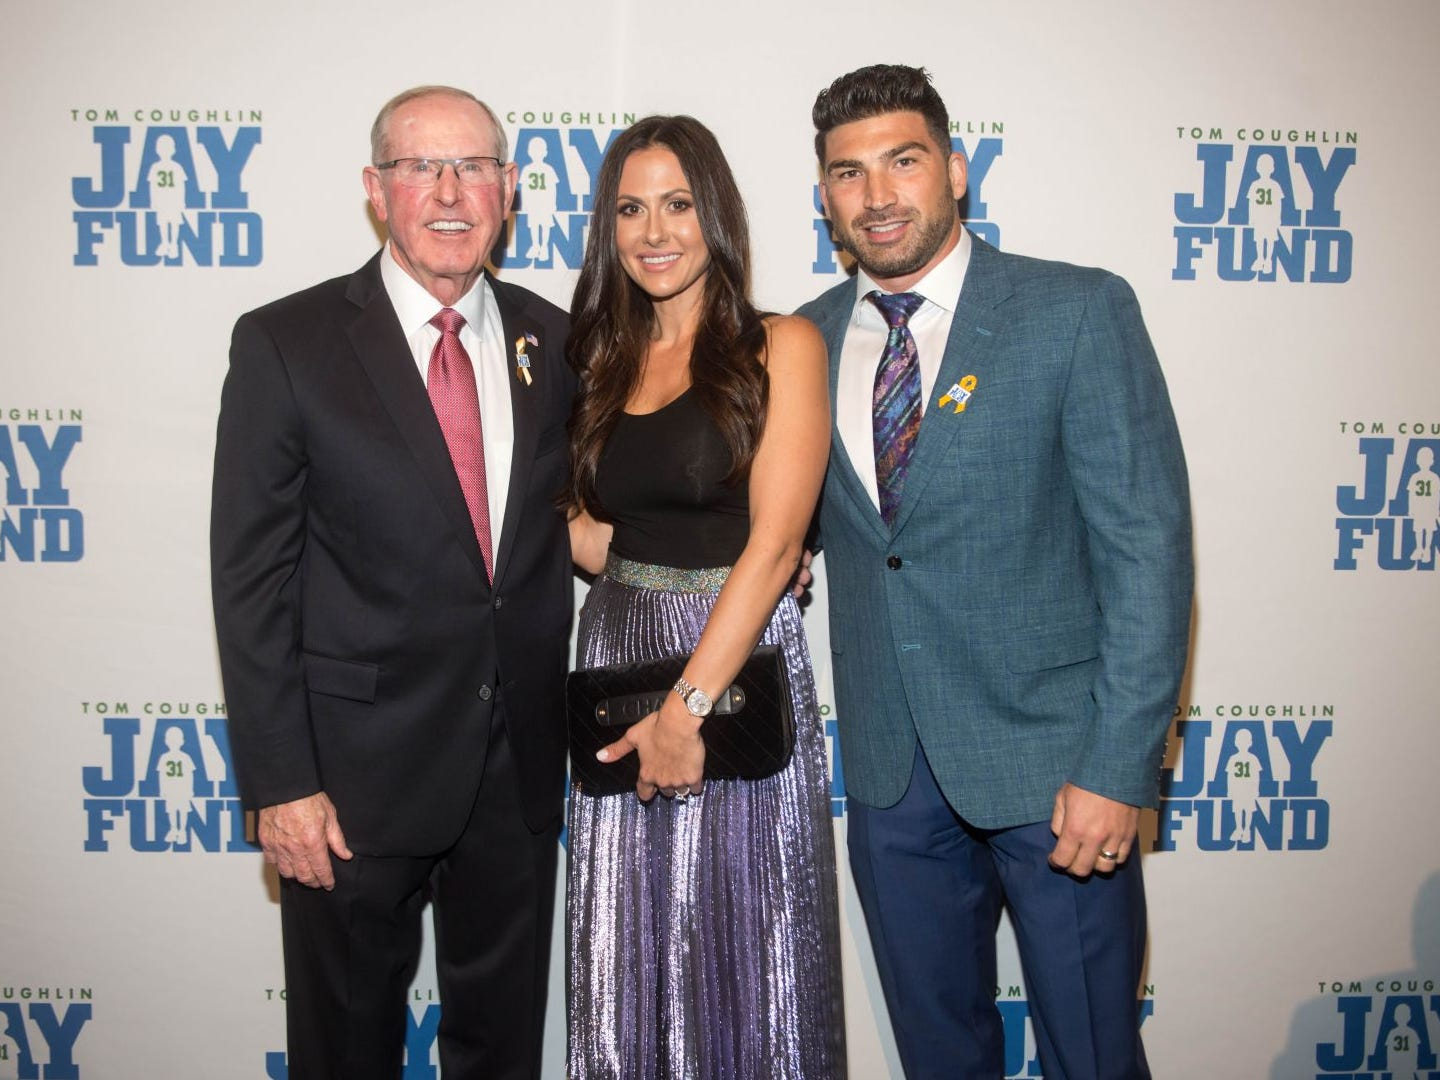 Tom Coughlin, Jaclyn Circiu and Vinny Circiu. The 14th annual Jay Fund Champions for Children Gala was held at Cipriani 42nd Street. 09/21/2018